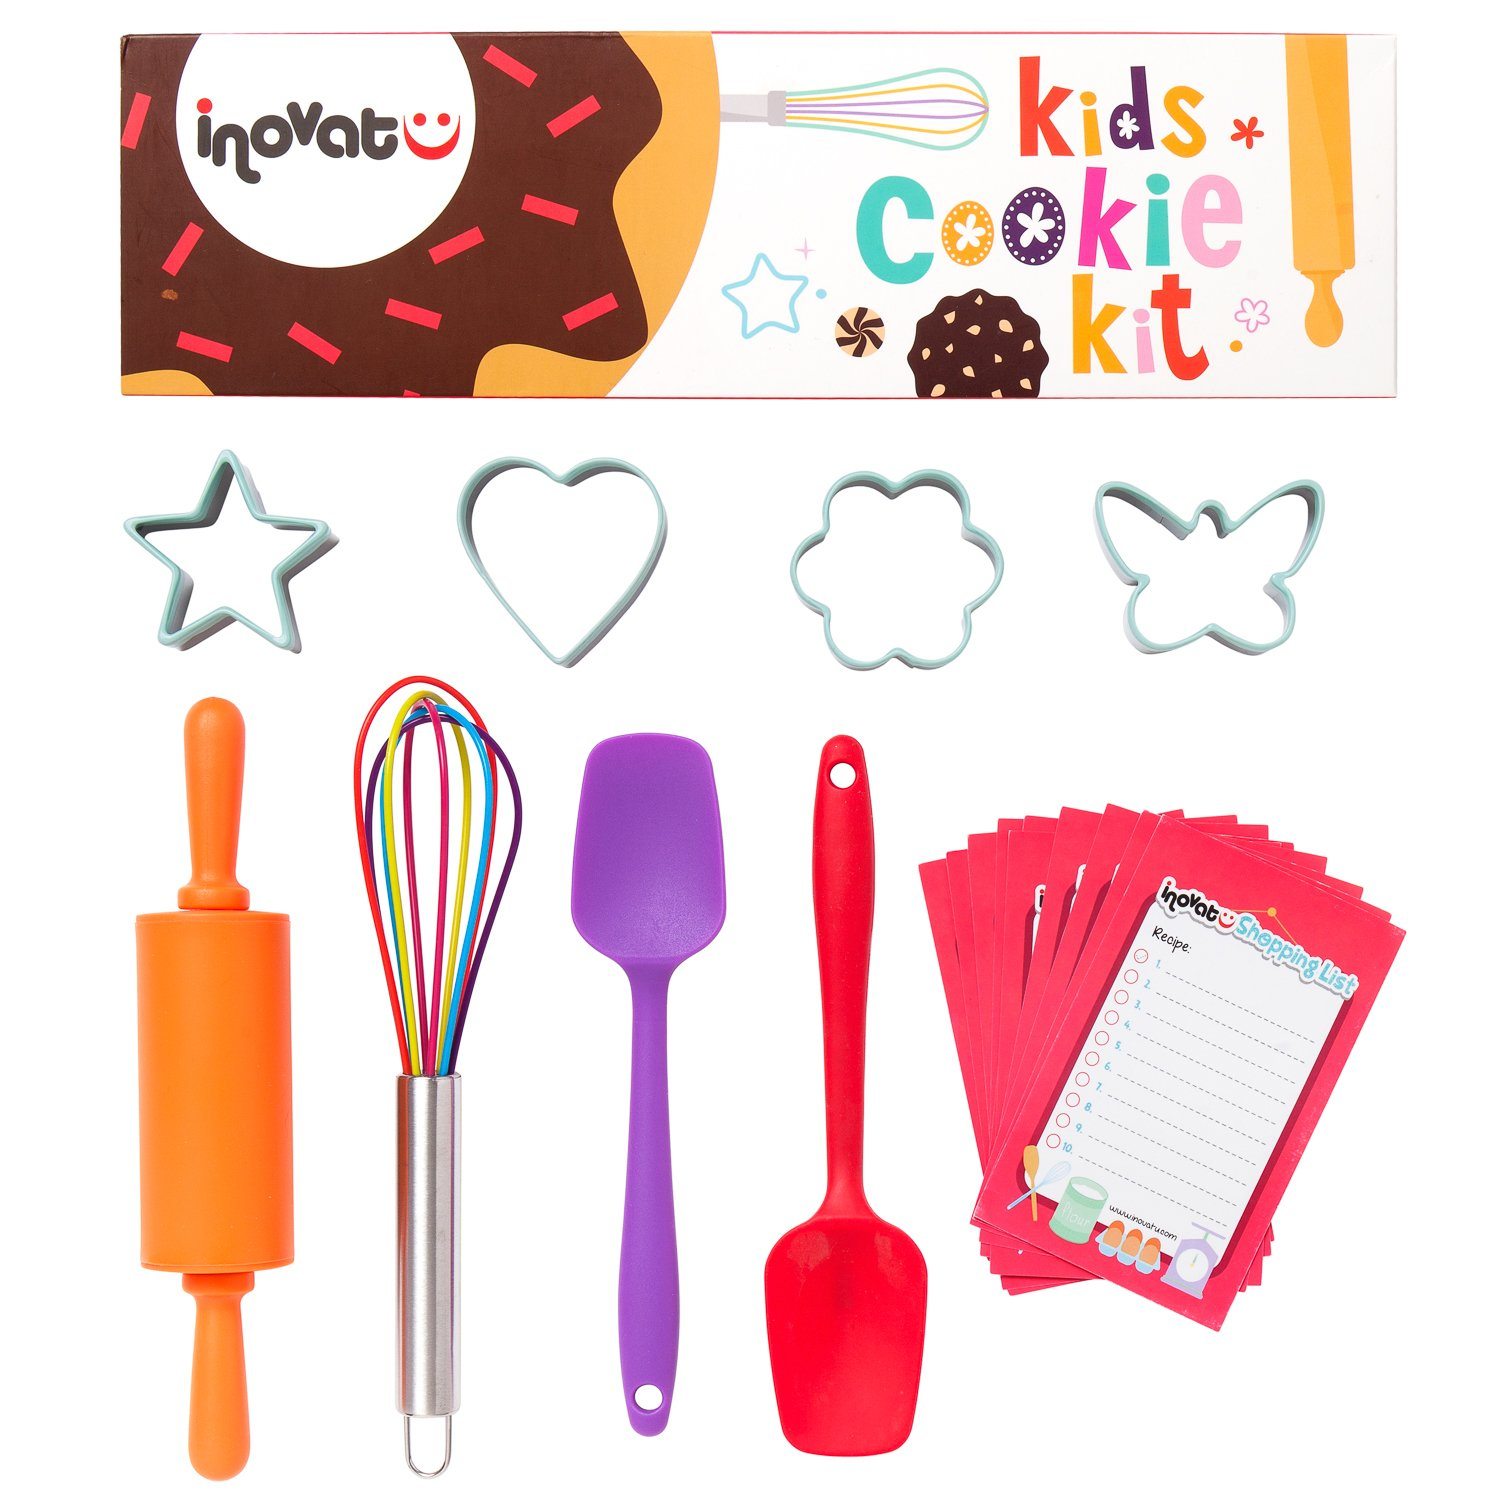 Kids Cookie Kit / 8 Pieces / Colorful Gift Box / Perfect Kids Baking Set / Quality Whisk, Cookie Cutters, Spatulas and Roller / Bonus Shopping Lists and Coupon